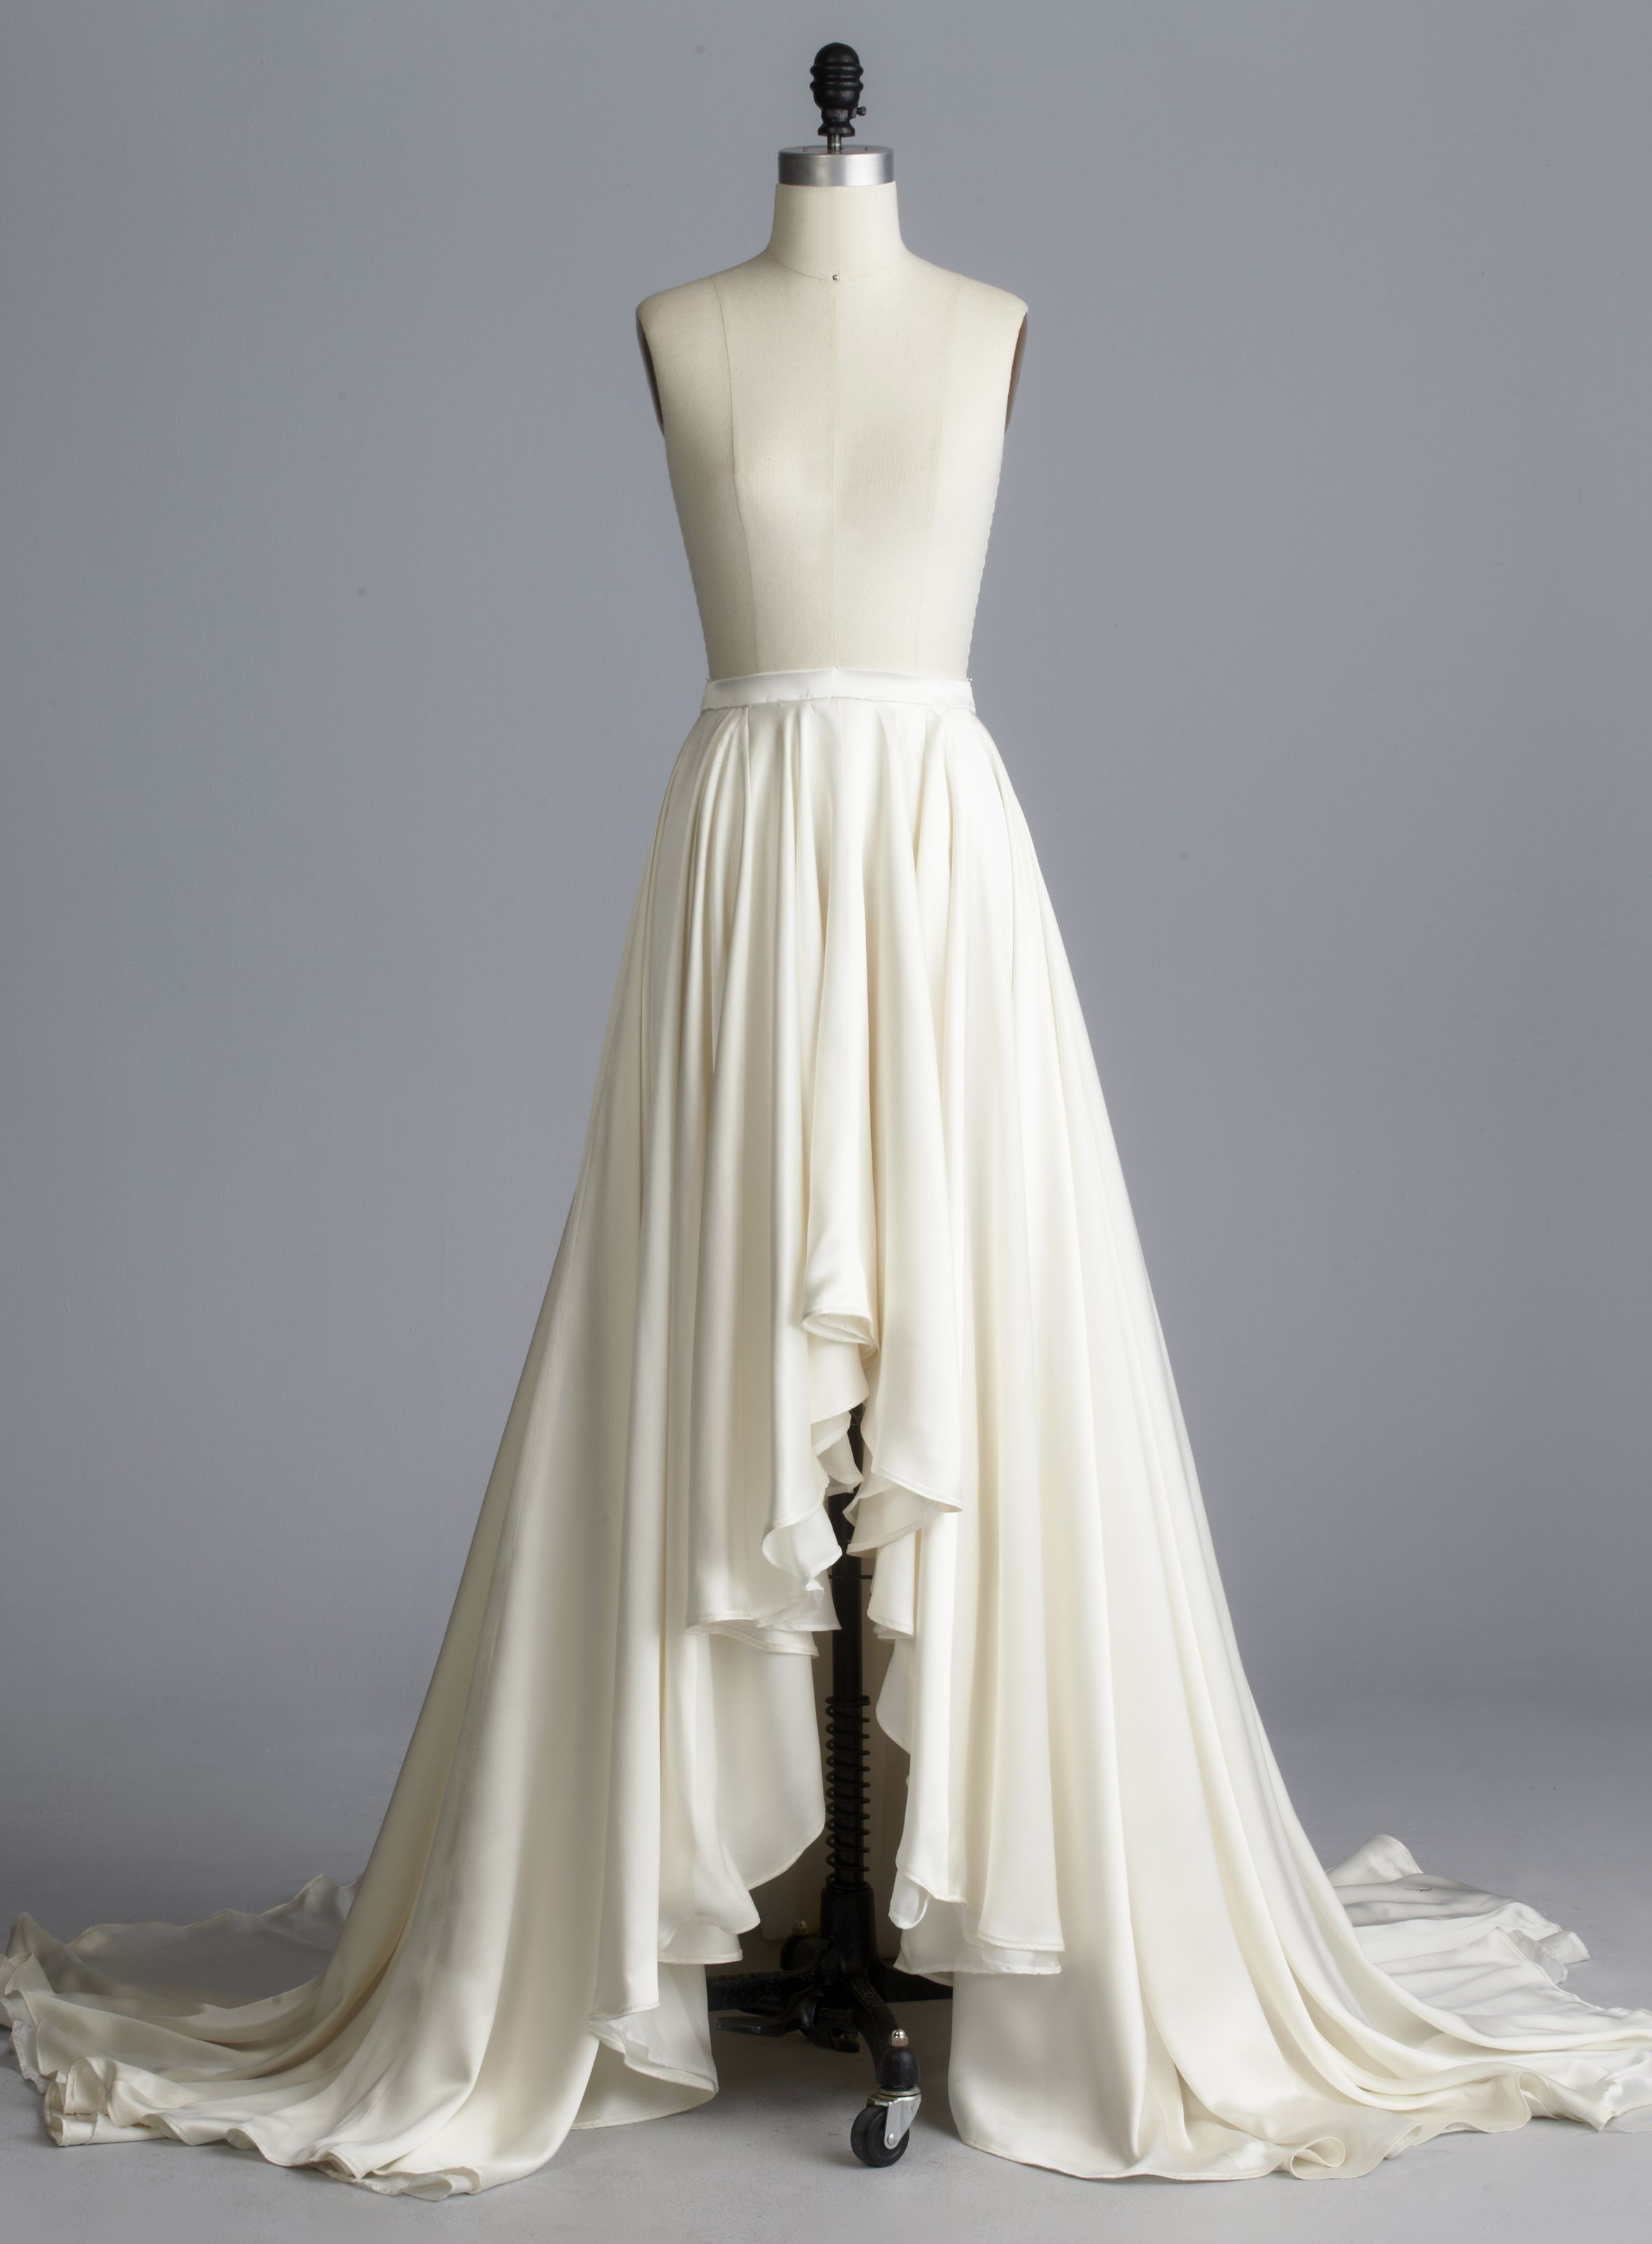 Della Giovanna Aaron Skirt- Off-White High Low Silk Double Face Satin with Train. Bridal Separates. Wedding Gown